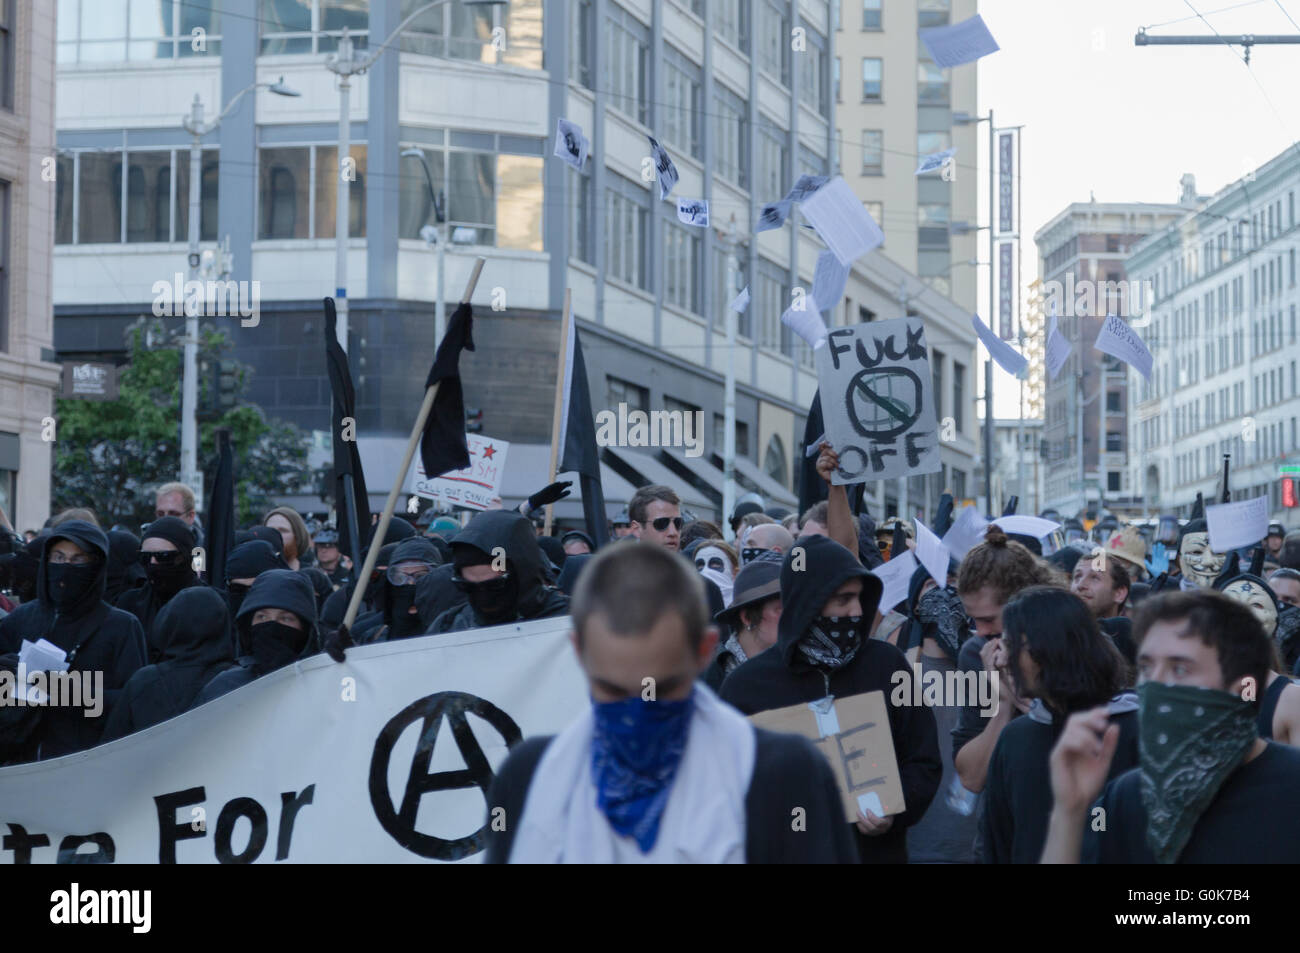 Seattle,USA. 1st May, 2016. Anarchists and Anti-Capitalism/Police force activists march in downtown. - Stock Image